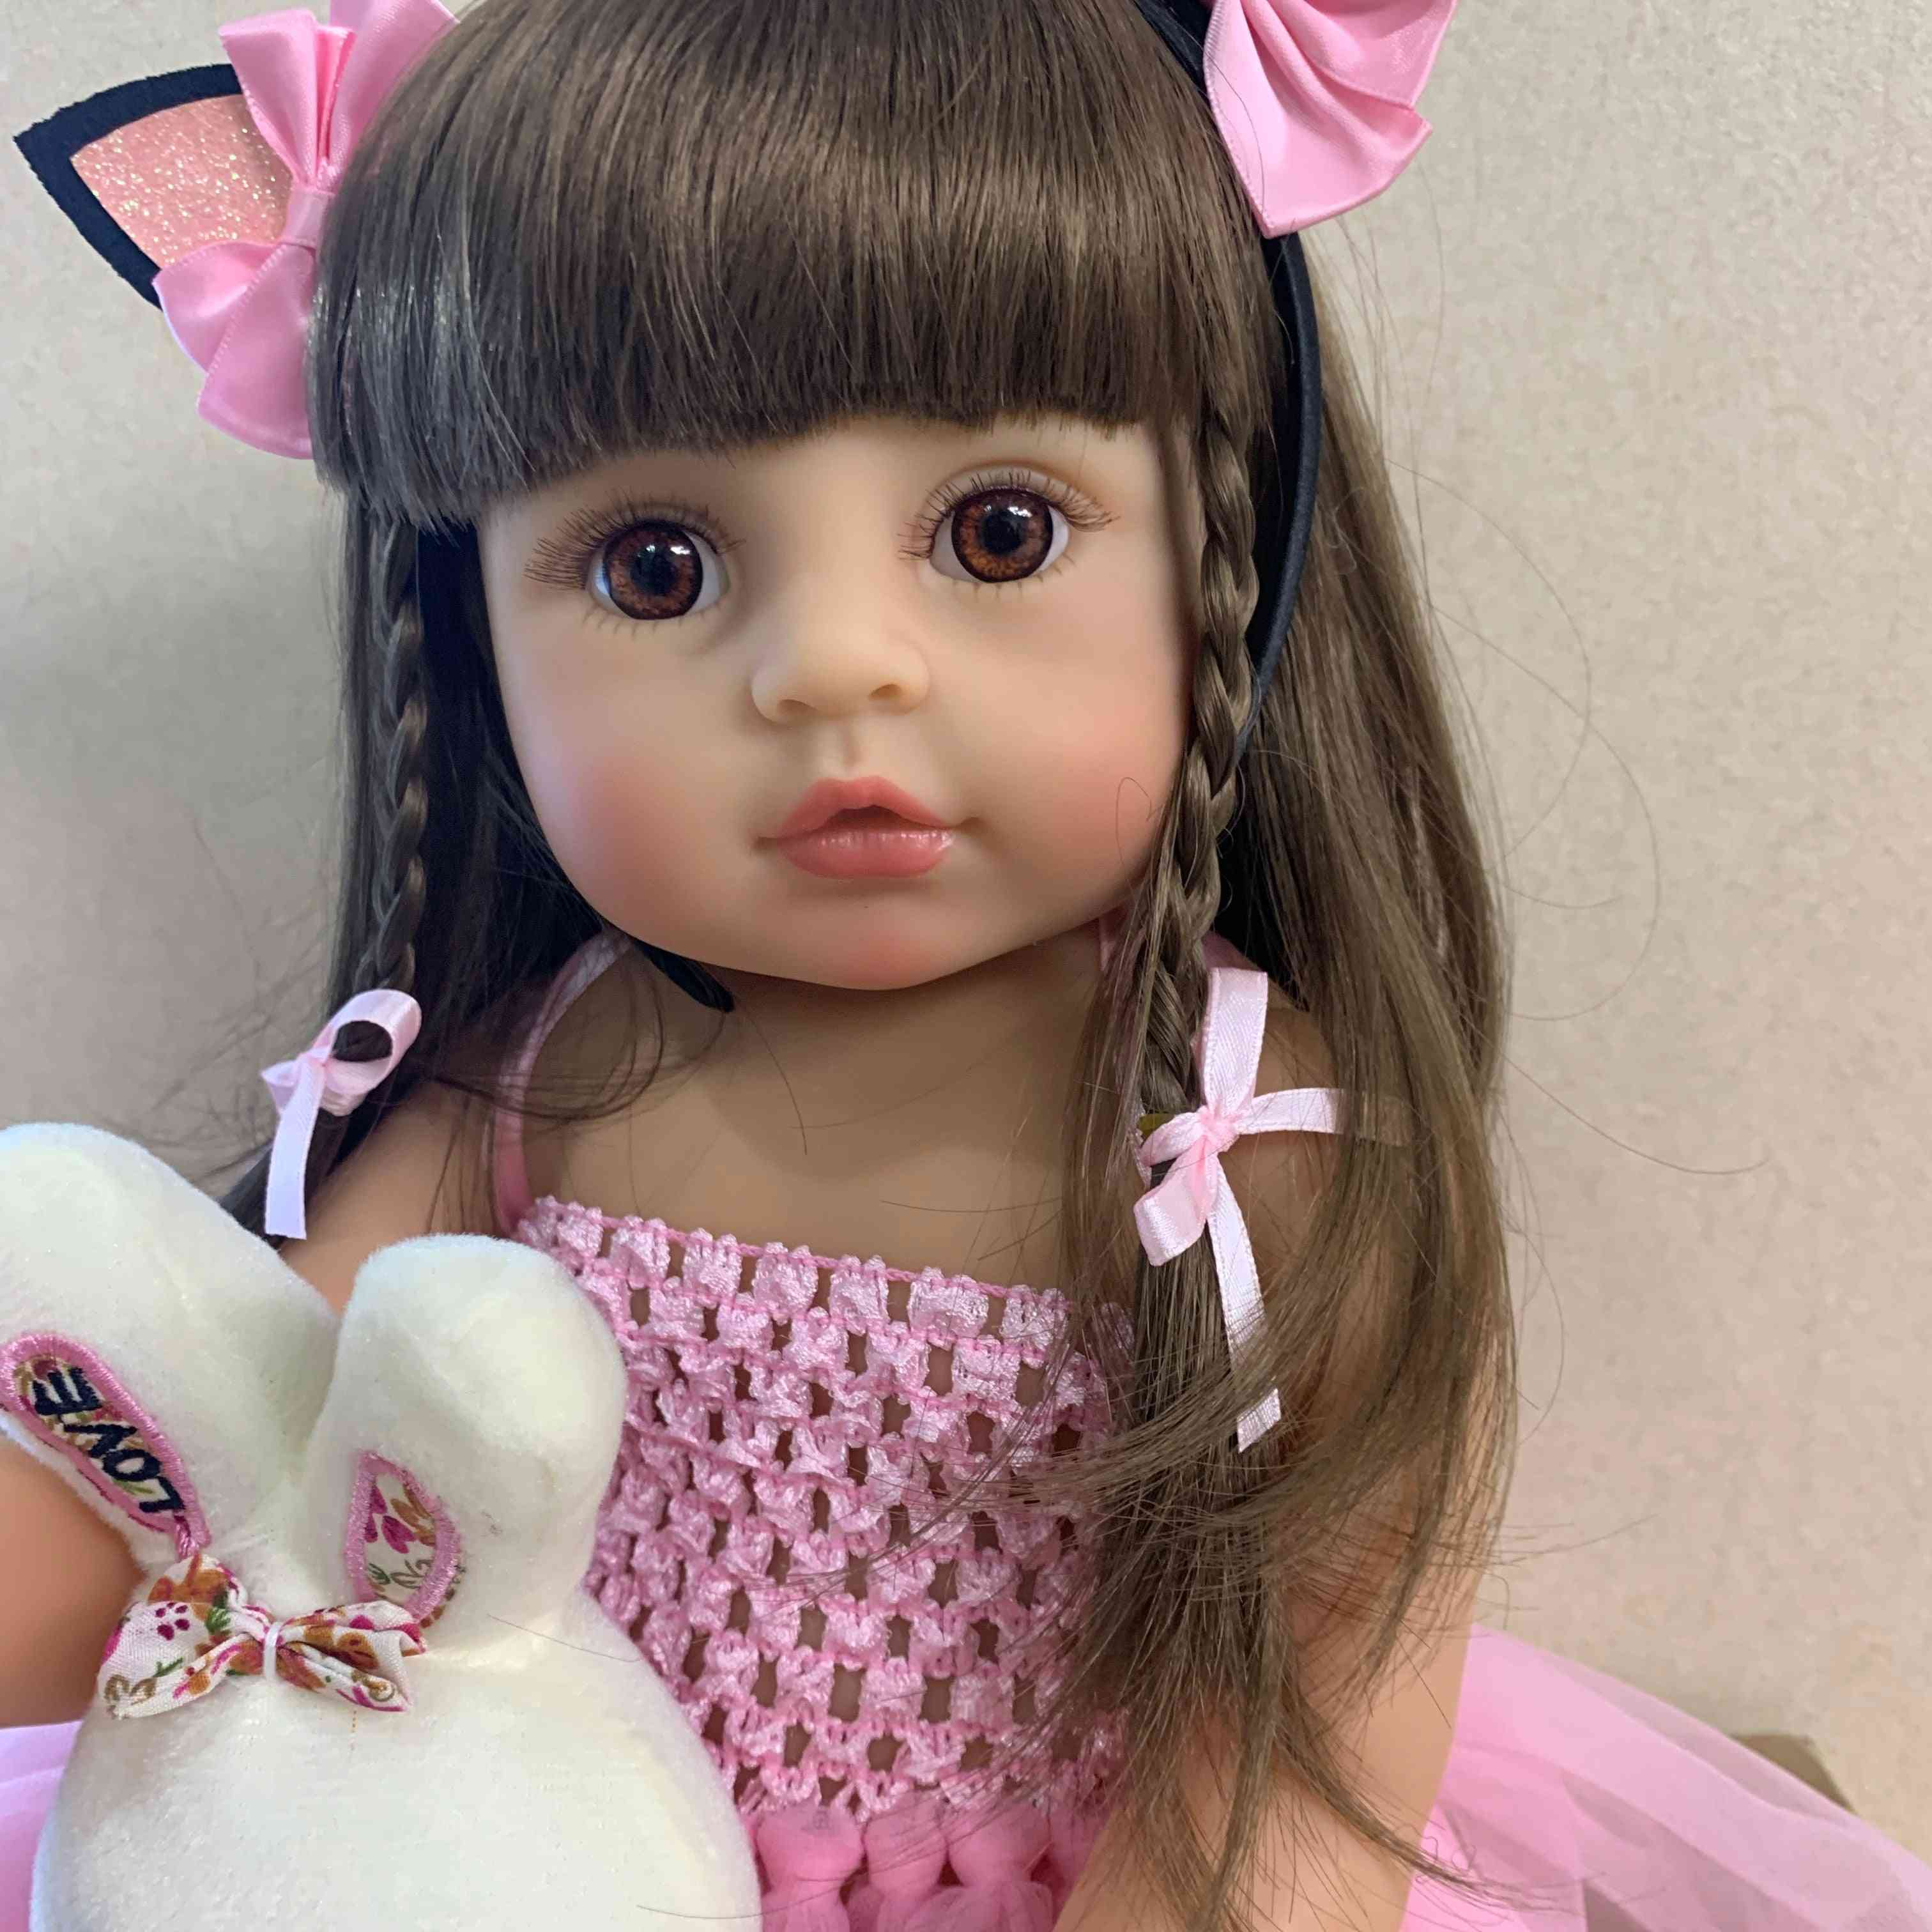 55cm Real Size Original Silicone Girl Doll - Toddler Girl , Pink Princess Bath Toy